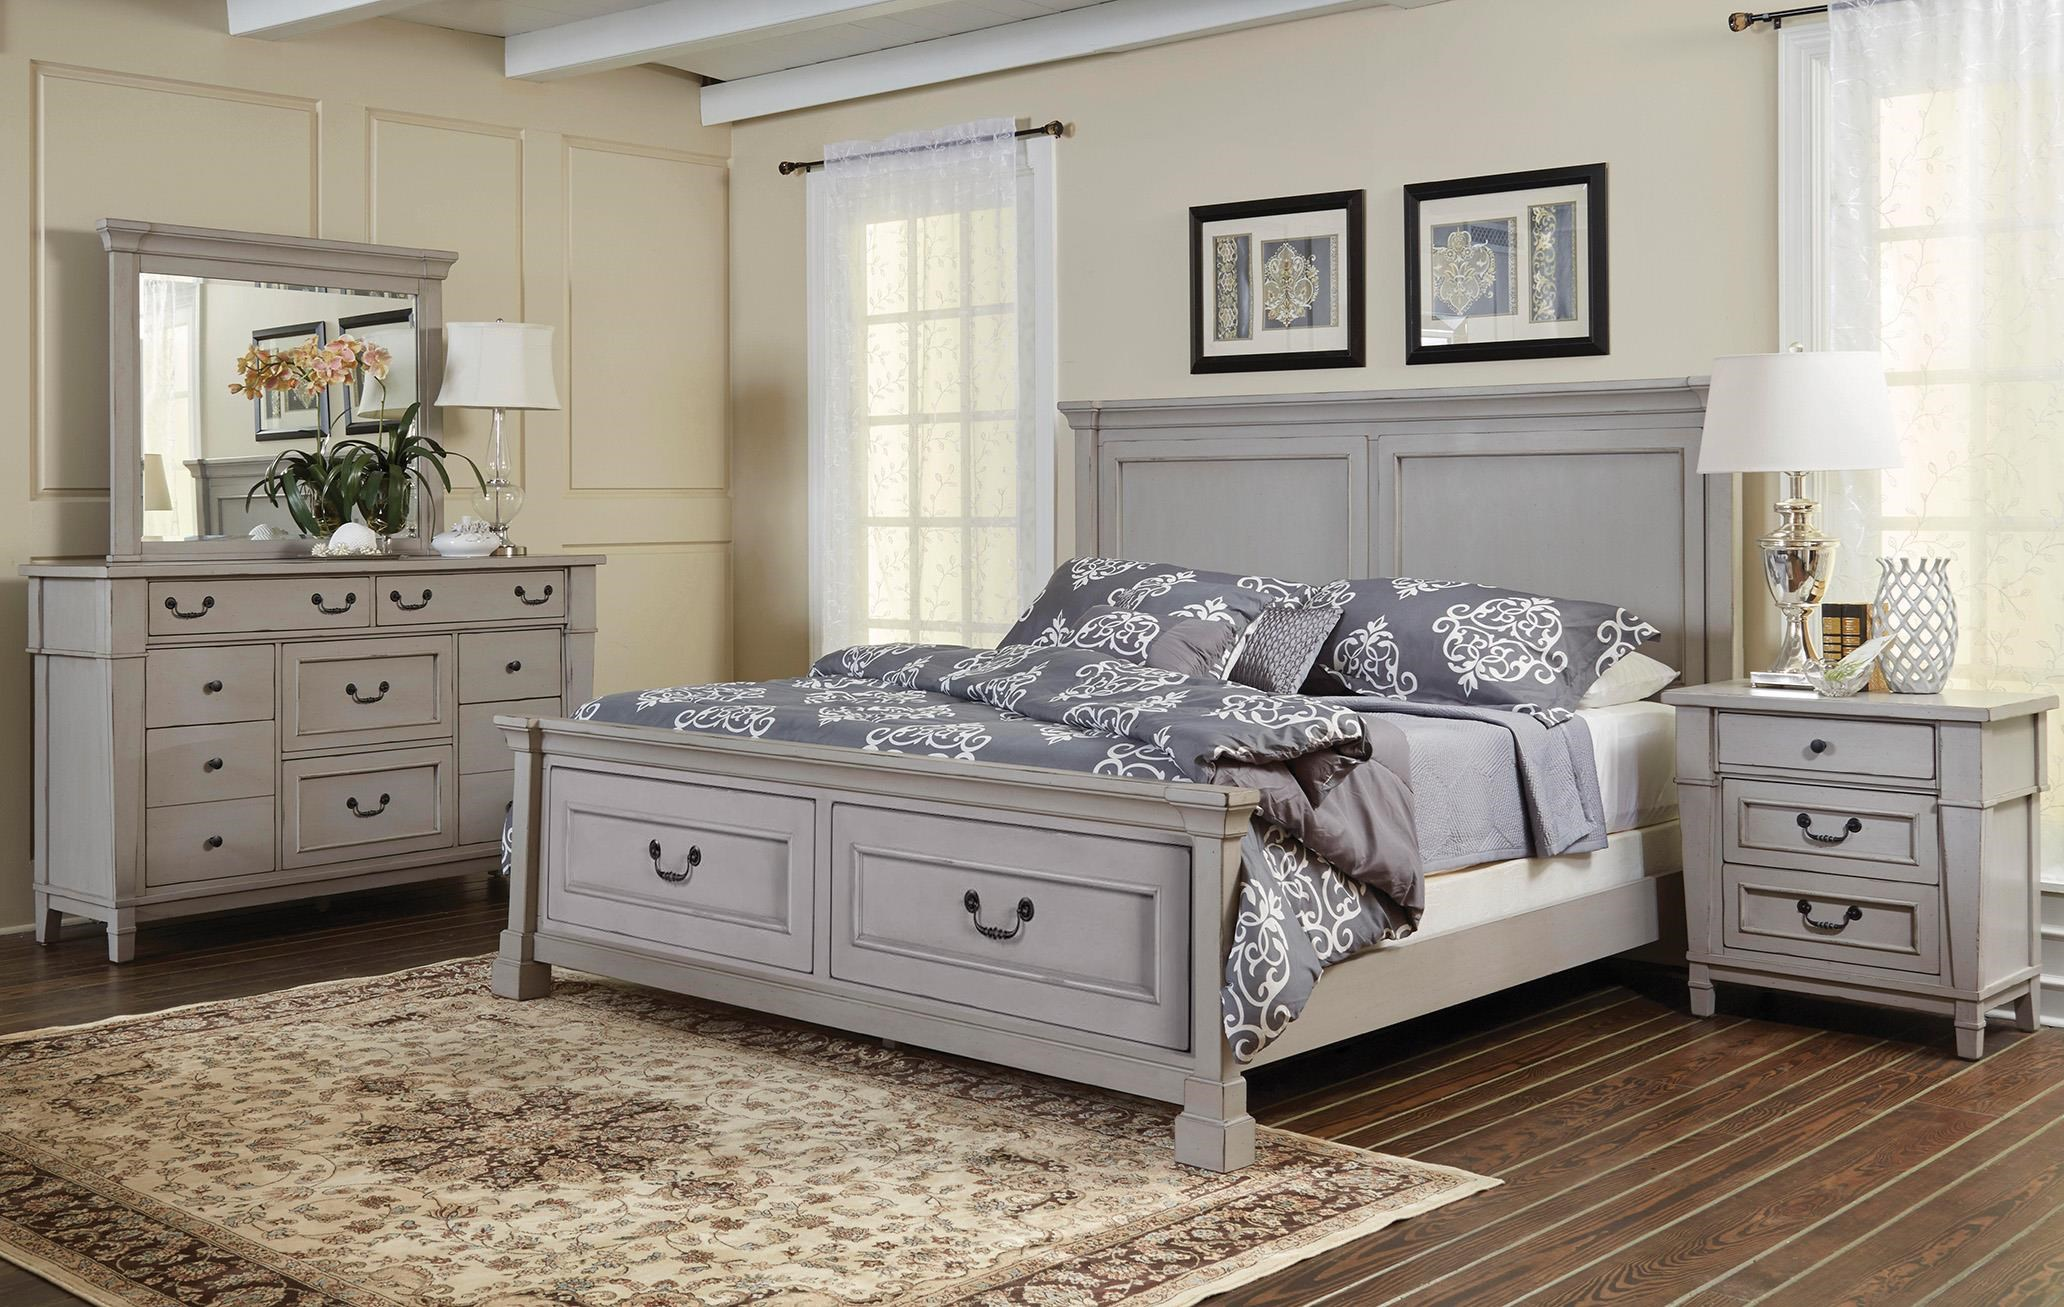 Queen Panel Storage Bed Dresser, Mirror, 3 D